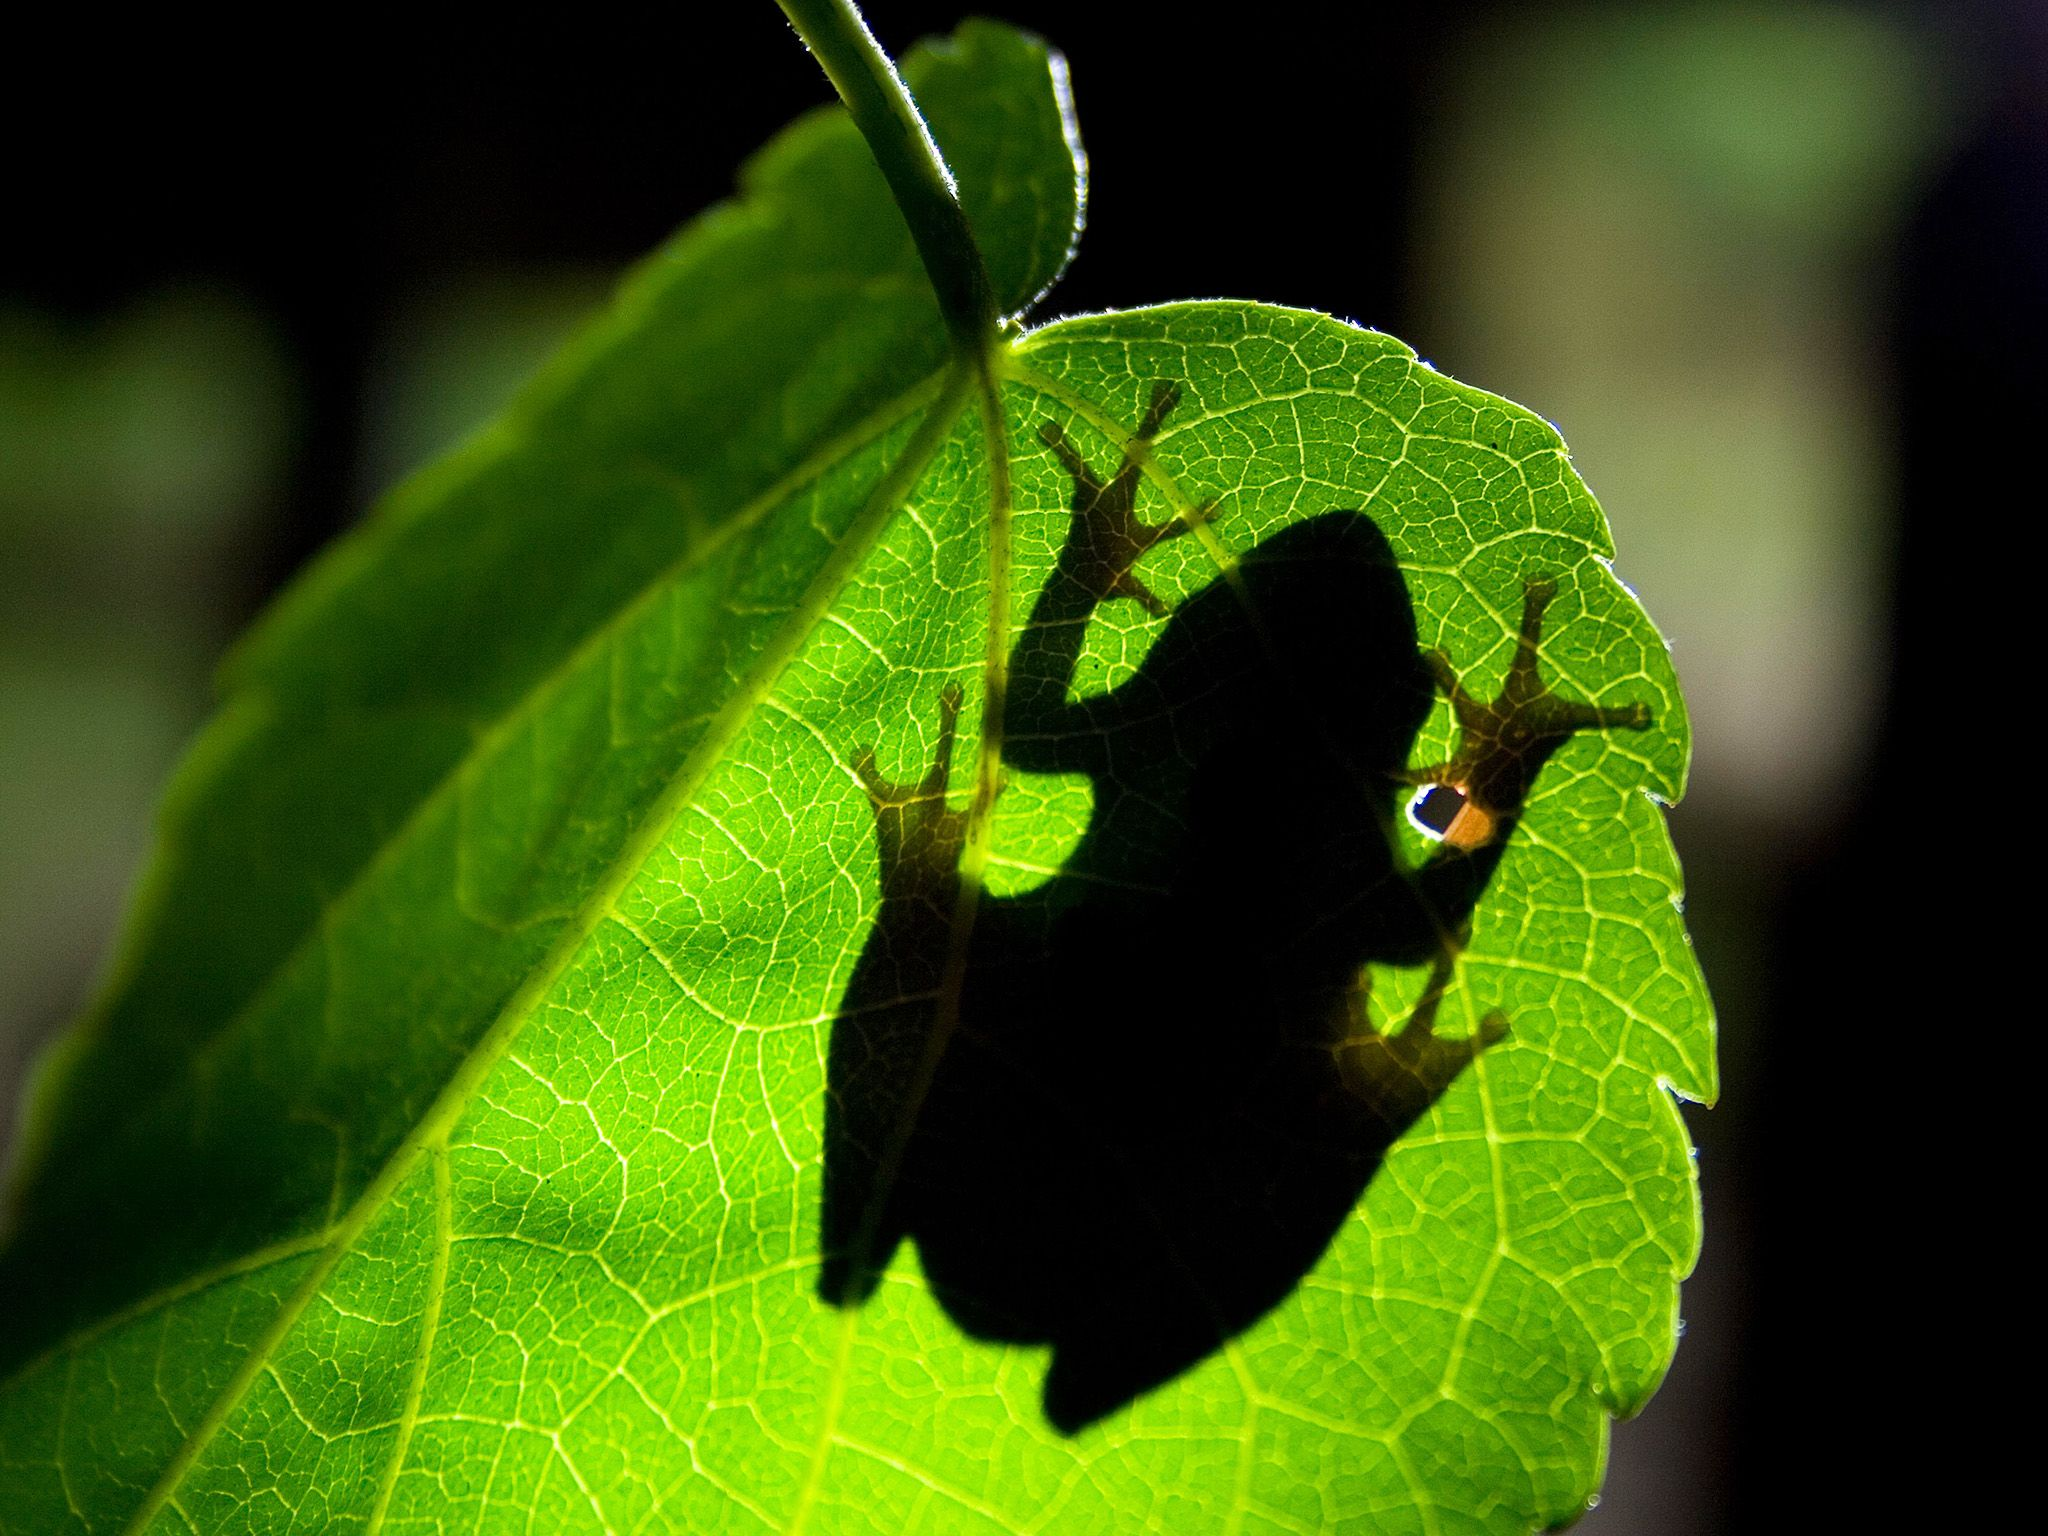 Underside shot looking up through leaf to silhouette of tree frog. Tree frogs distinctive disc-sh... [Photo of the day - May 2015]